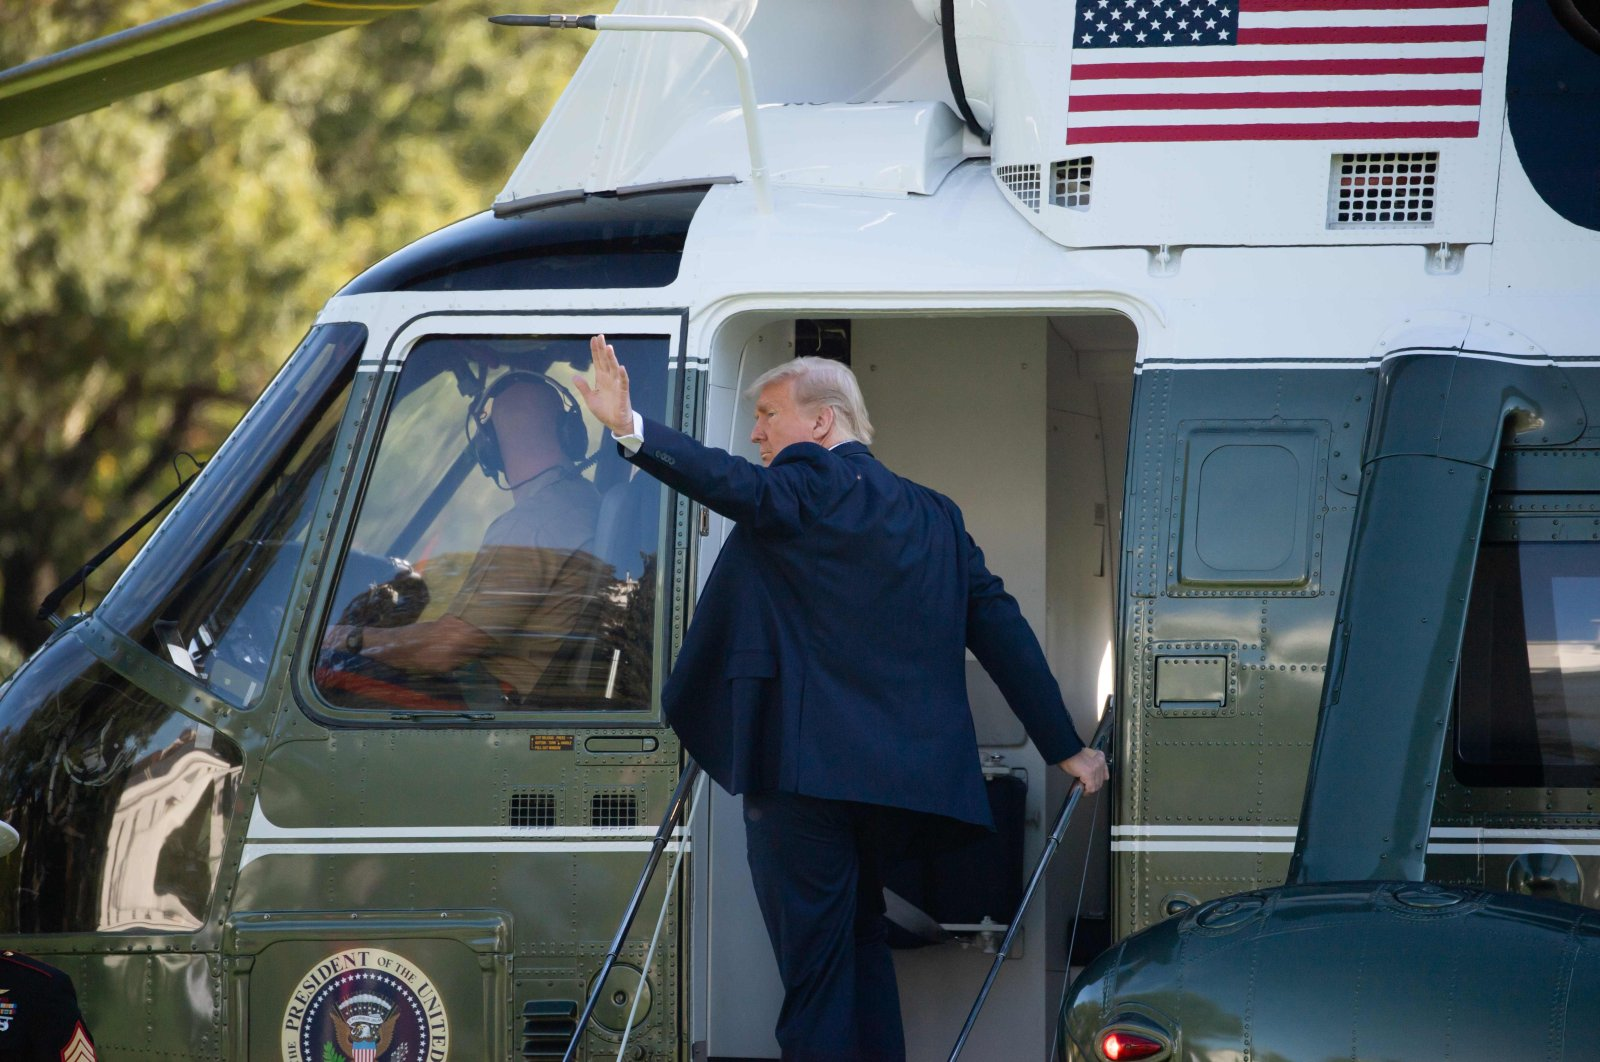 U.S. President Donald Trump boards Marine One as he departs the White House in Washington, D.C., Oct. 14, 2020. (AFP Photo)